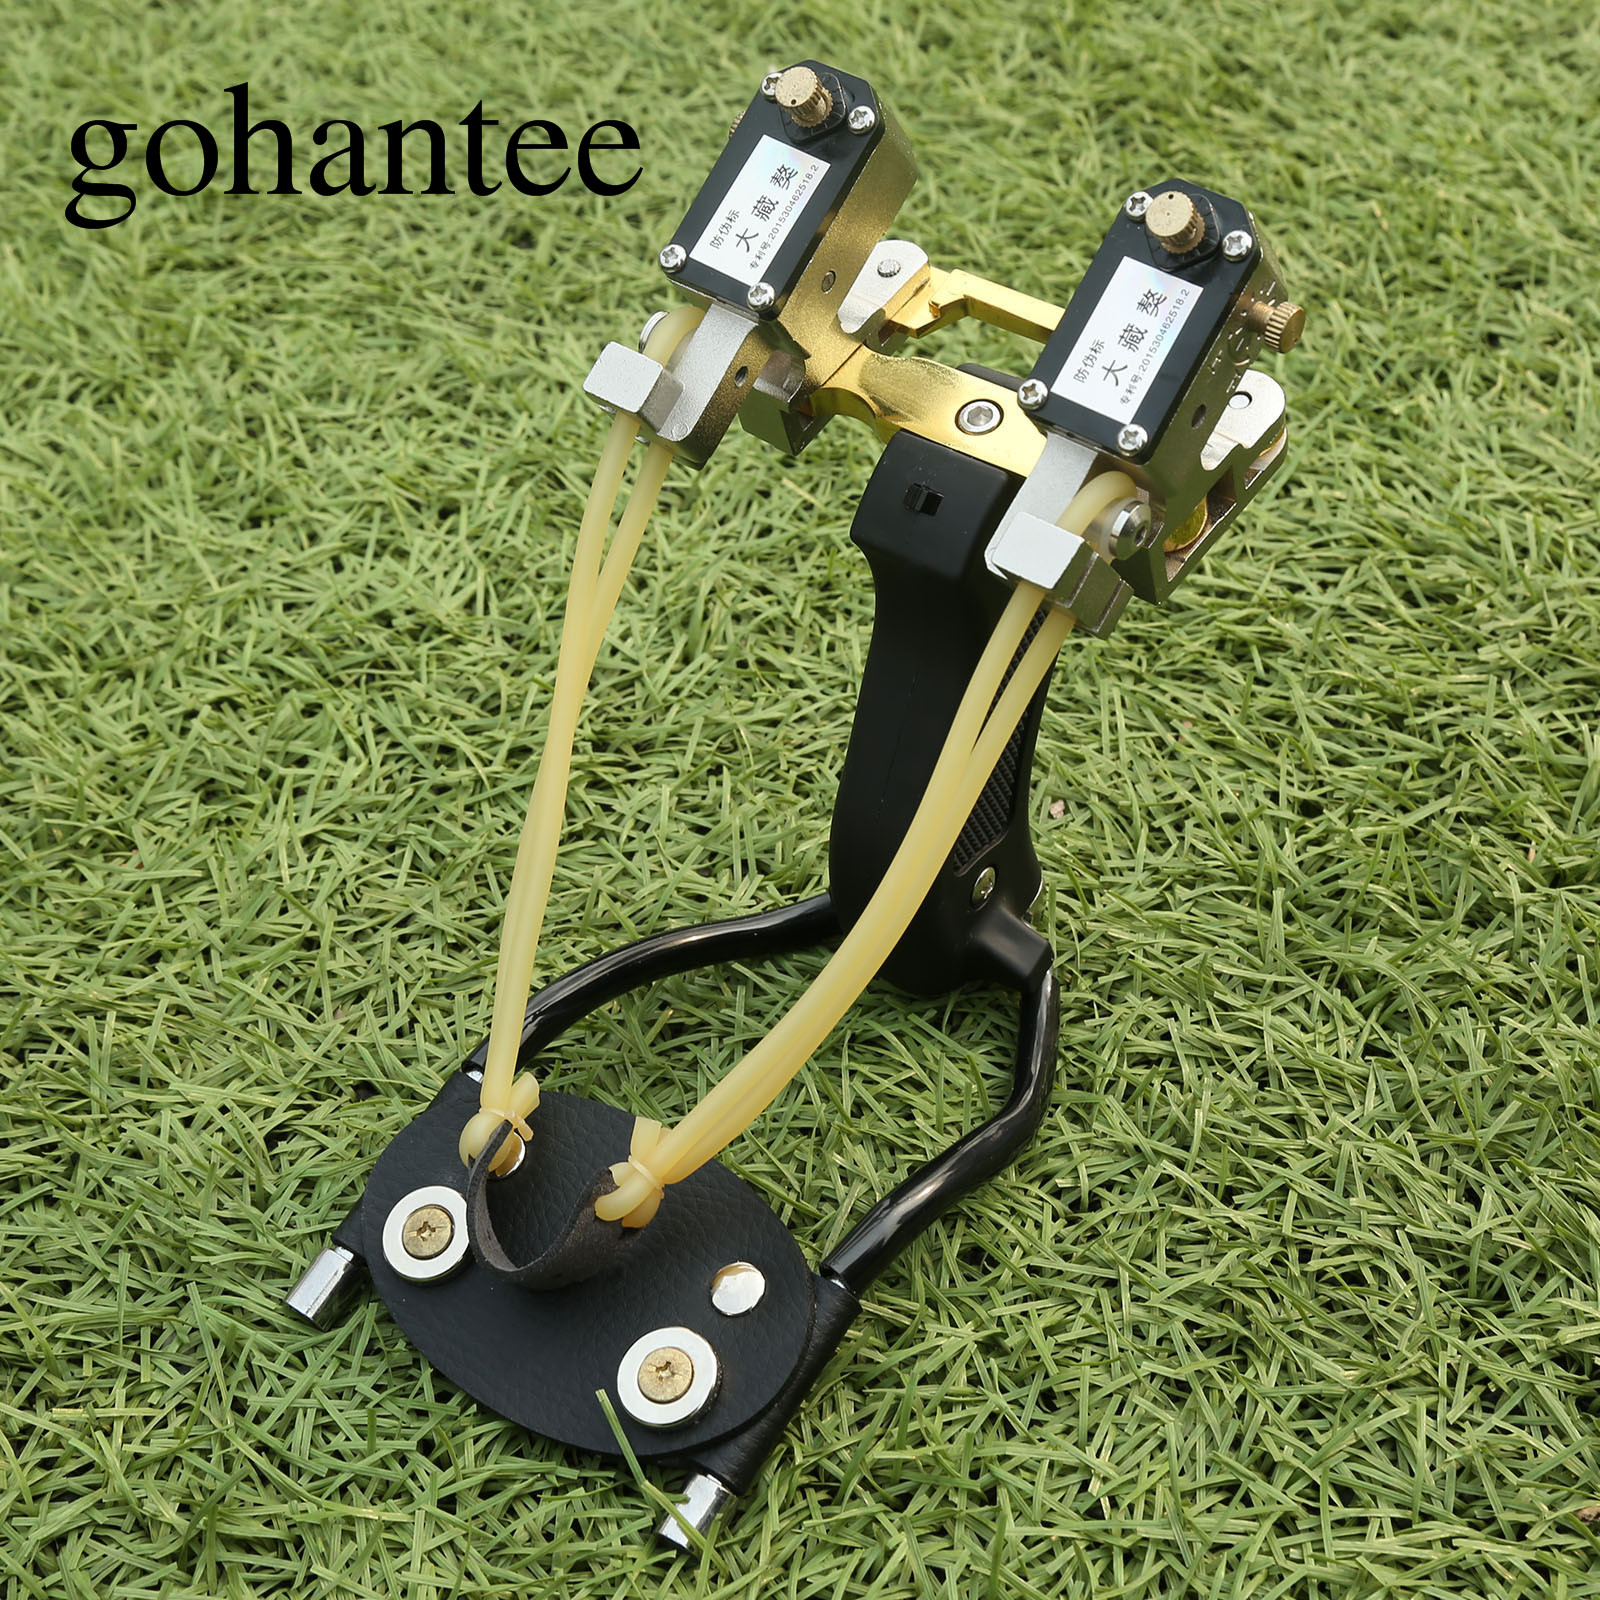 gohantee Strong Powerful Hunting Slingshots with Laser Large Folding Wrist Brace Catapult +Rubber Band Outdoor Shooting /Fishing